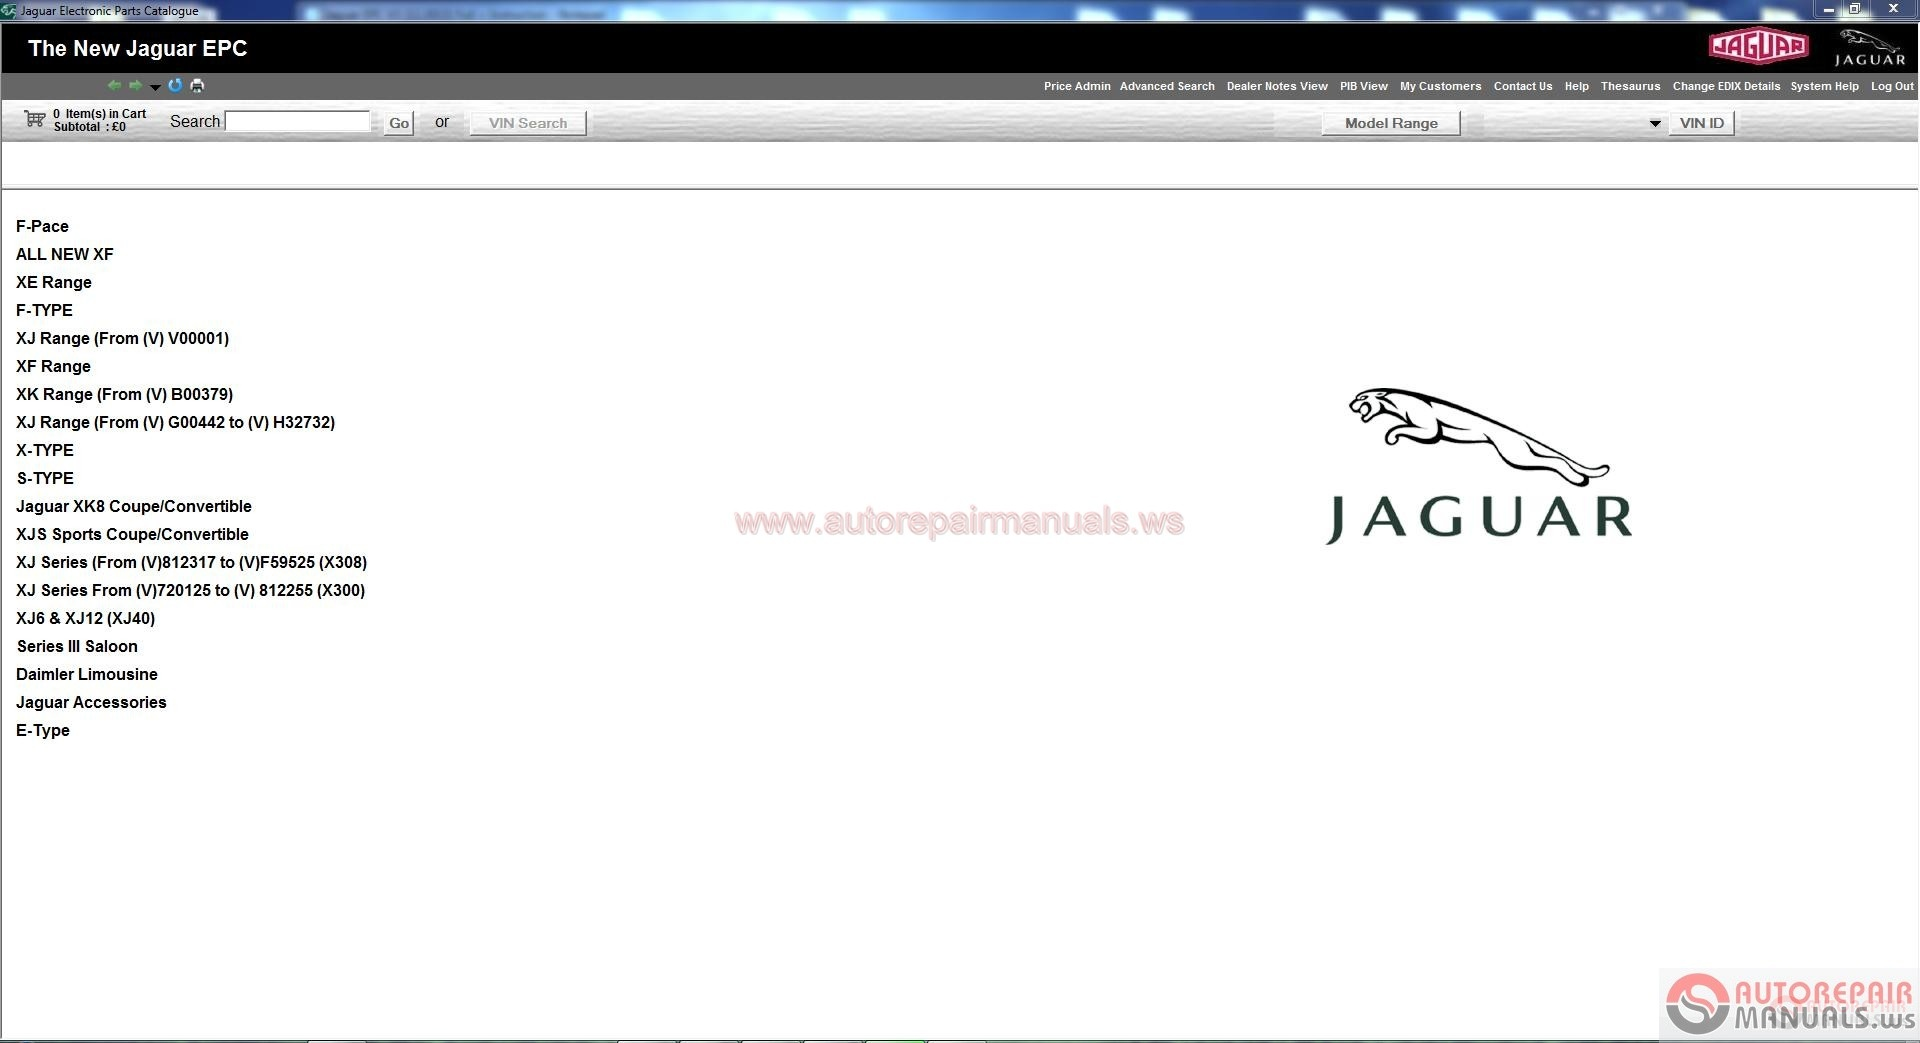 Arm00107 Jaguar Epc Vin 01 2018 Full Instruction Auto Repair Manual Forum Heavy